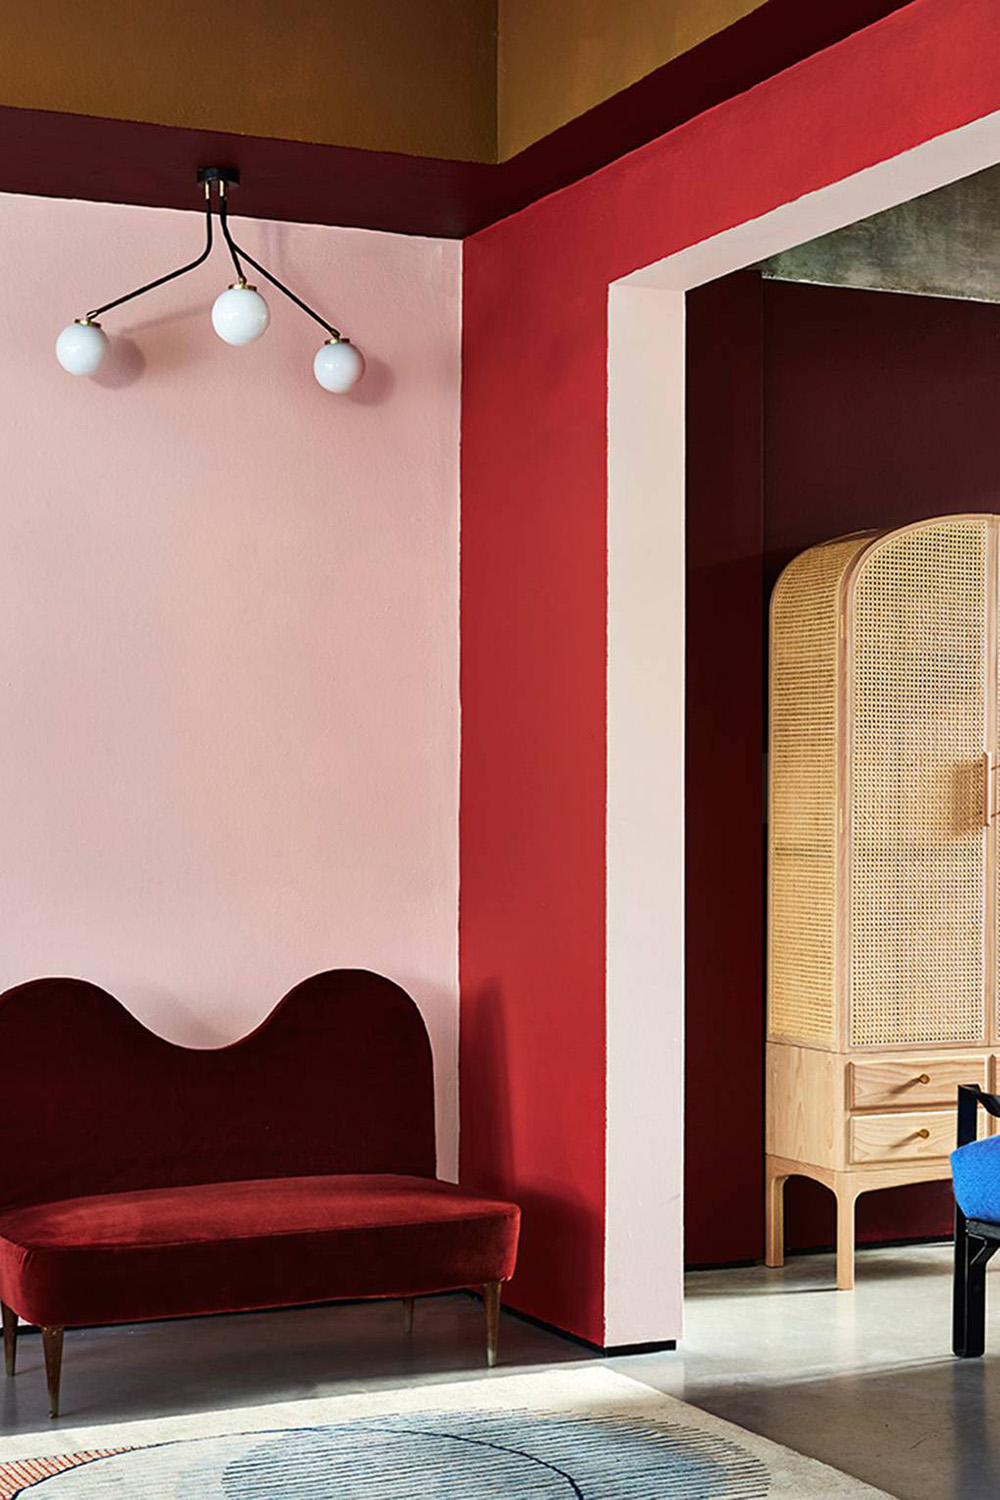 So Fresh & So Chic // Pink and Red Interiors // Vintage 60's inspired room with colour blocked red, pink, maroon and mustard walls